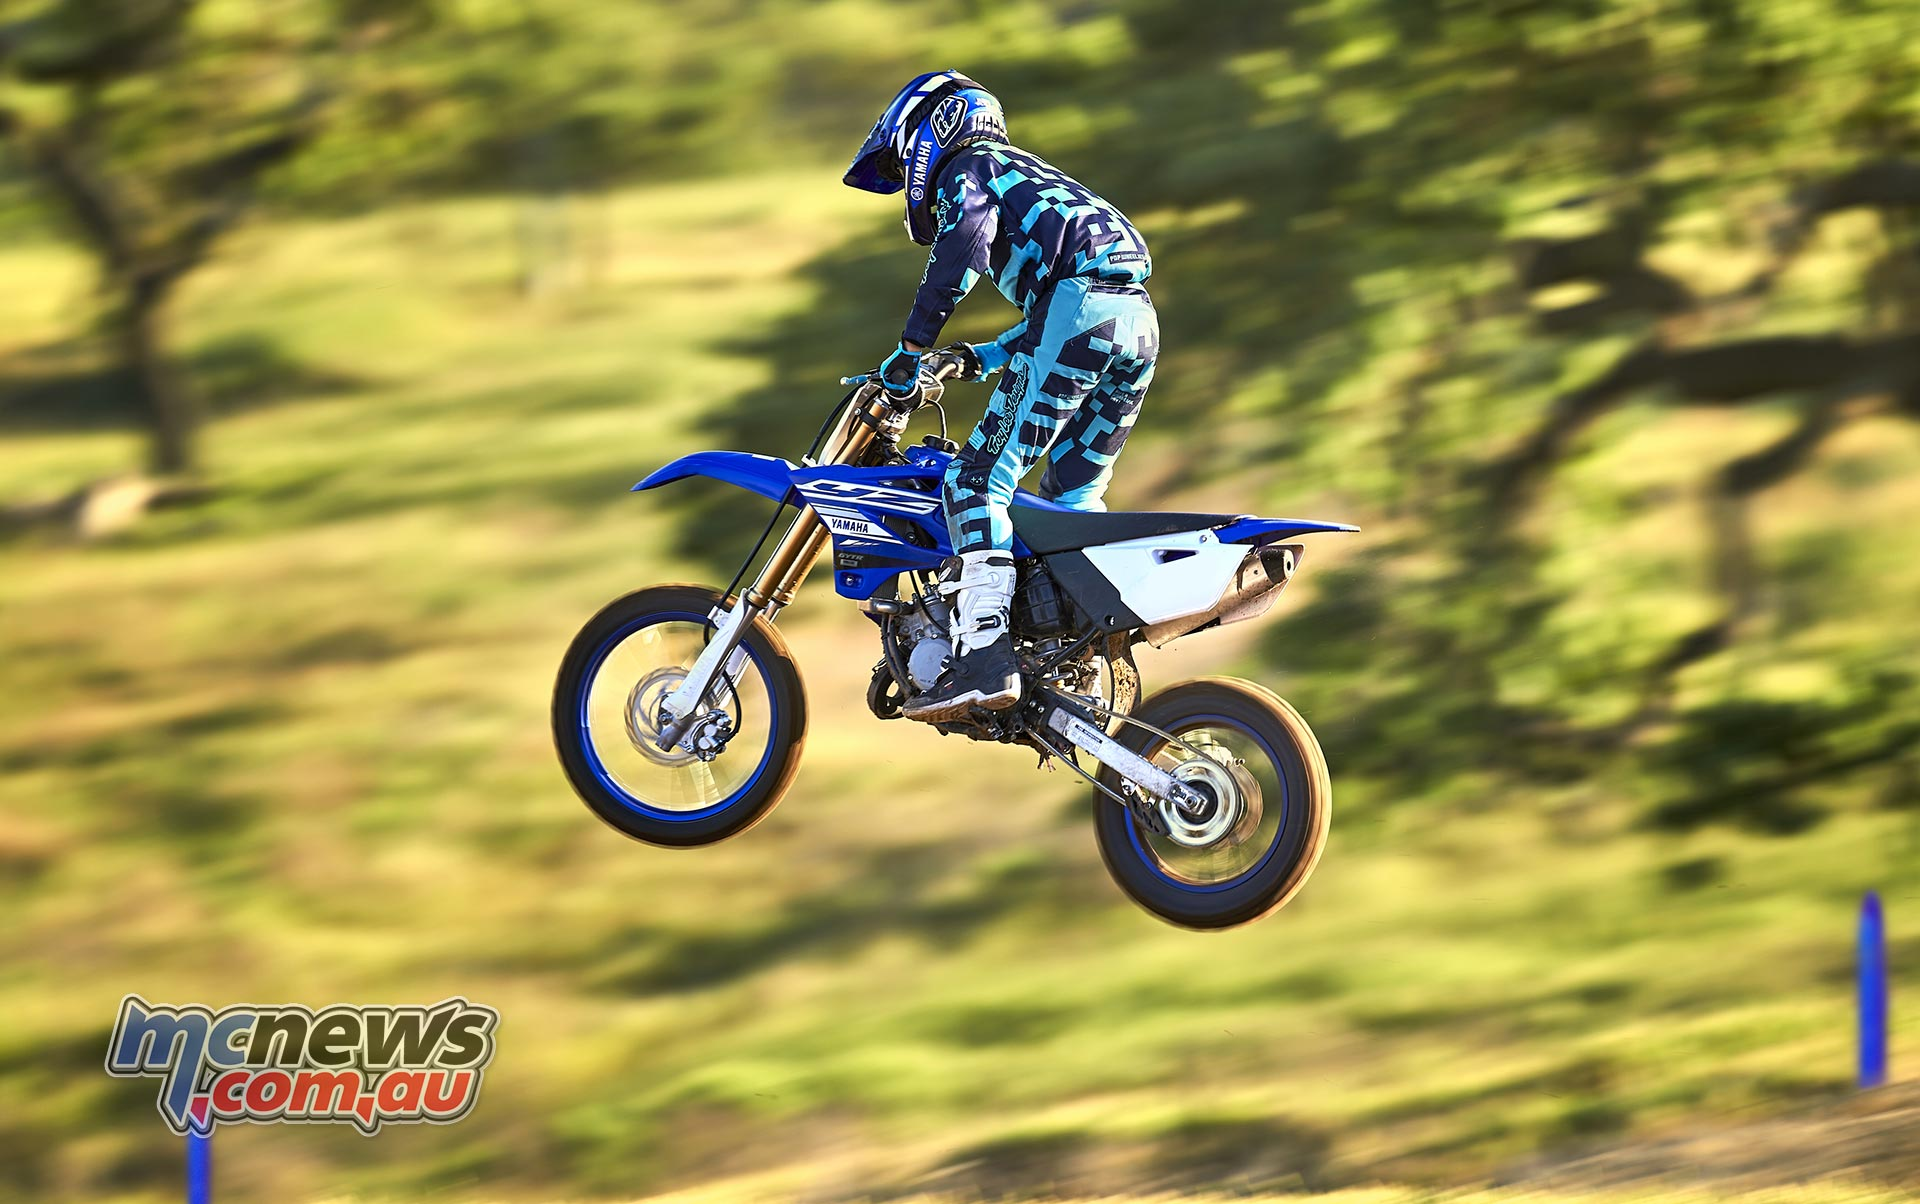 2019 Yamaha Yz85 New Engine New Suspension Mcnews Com Au